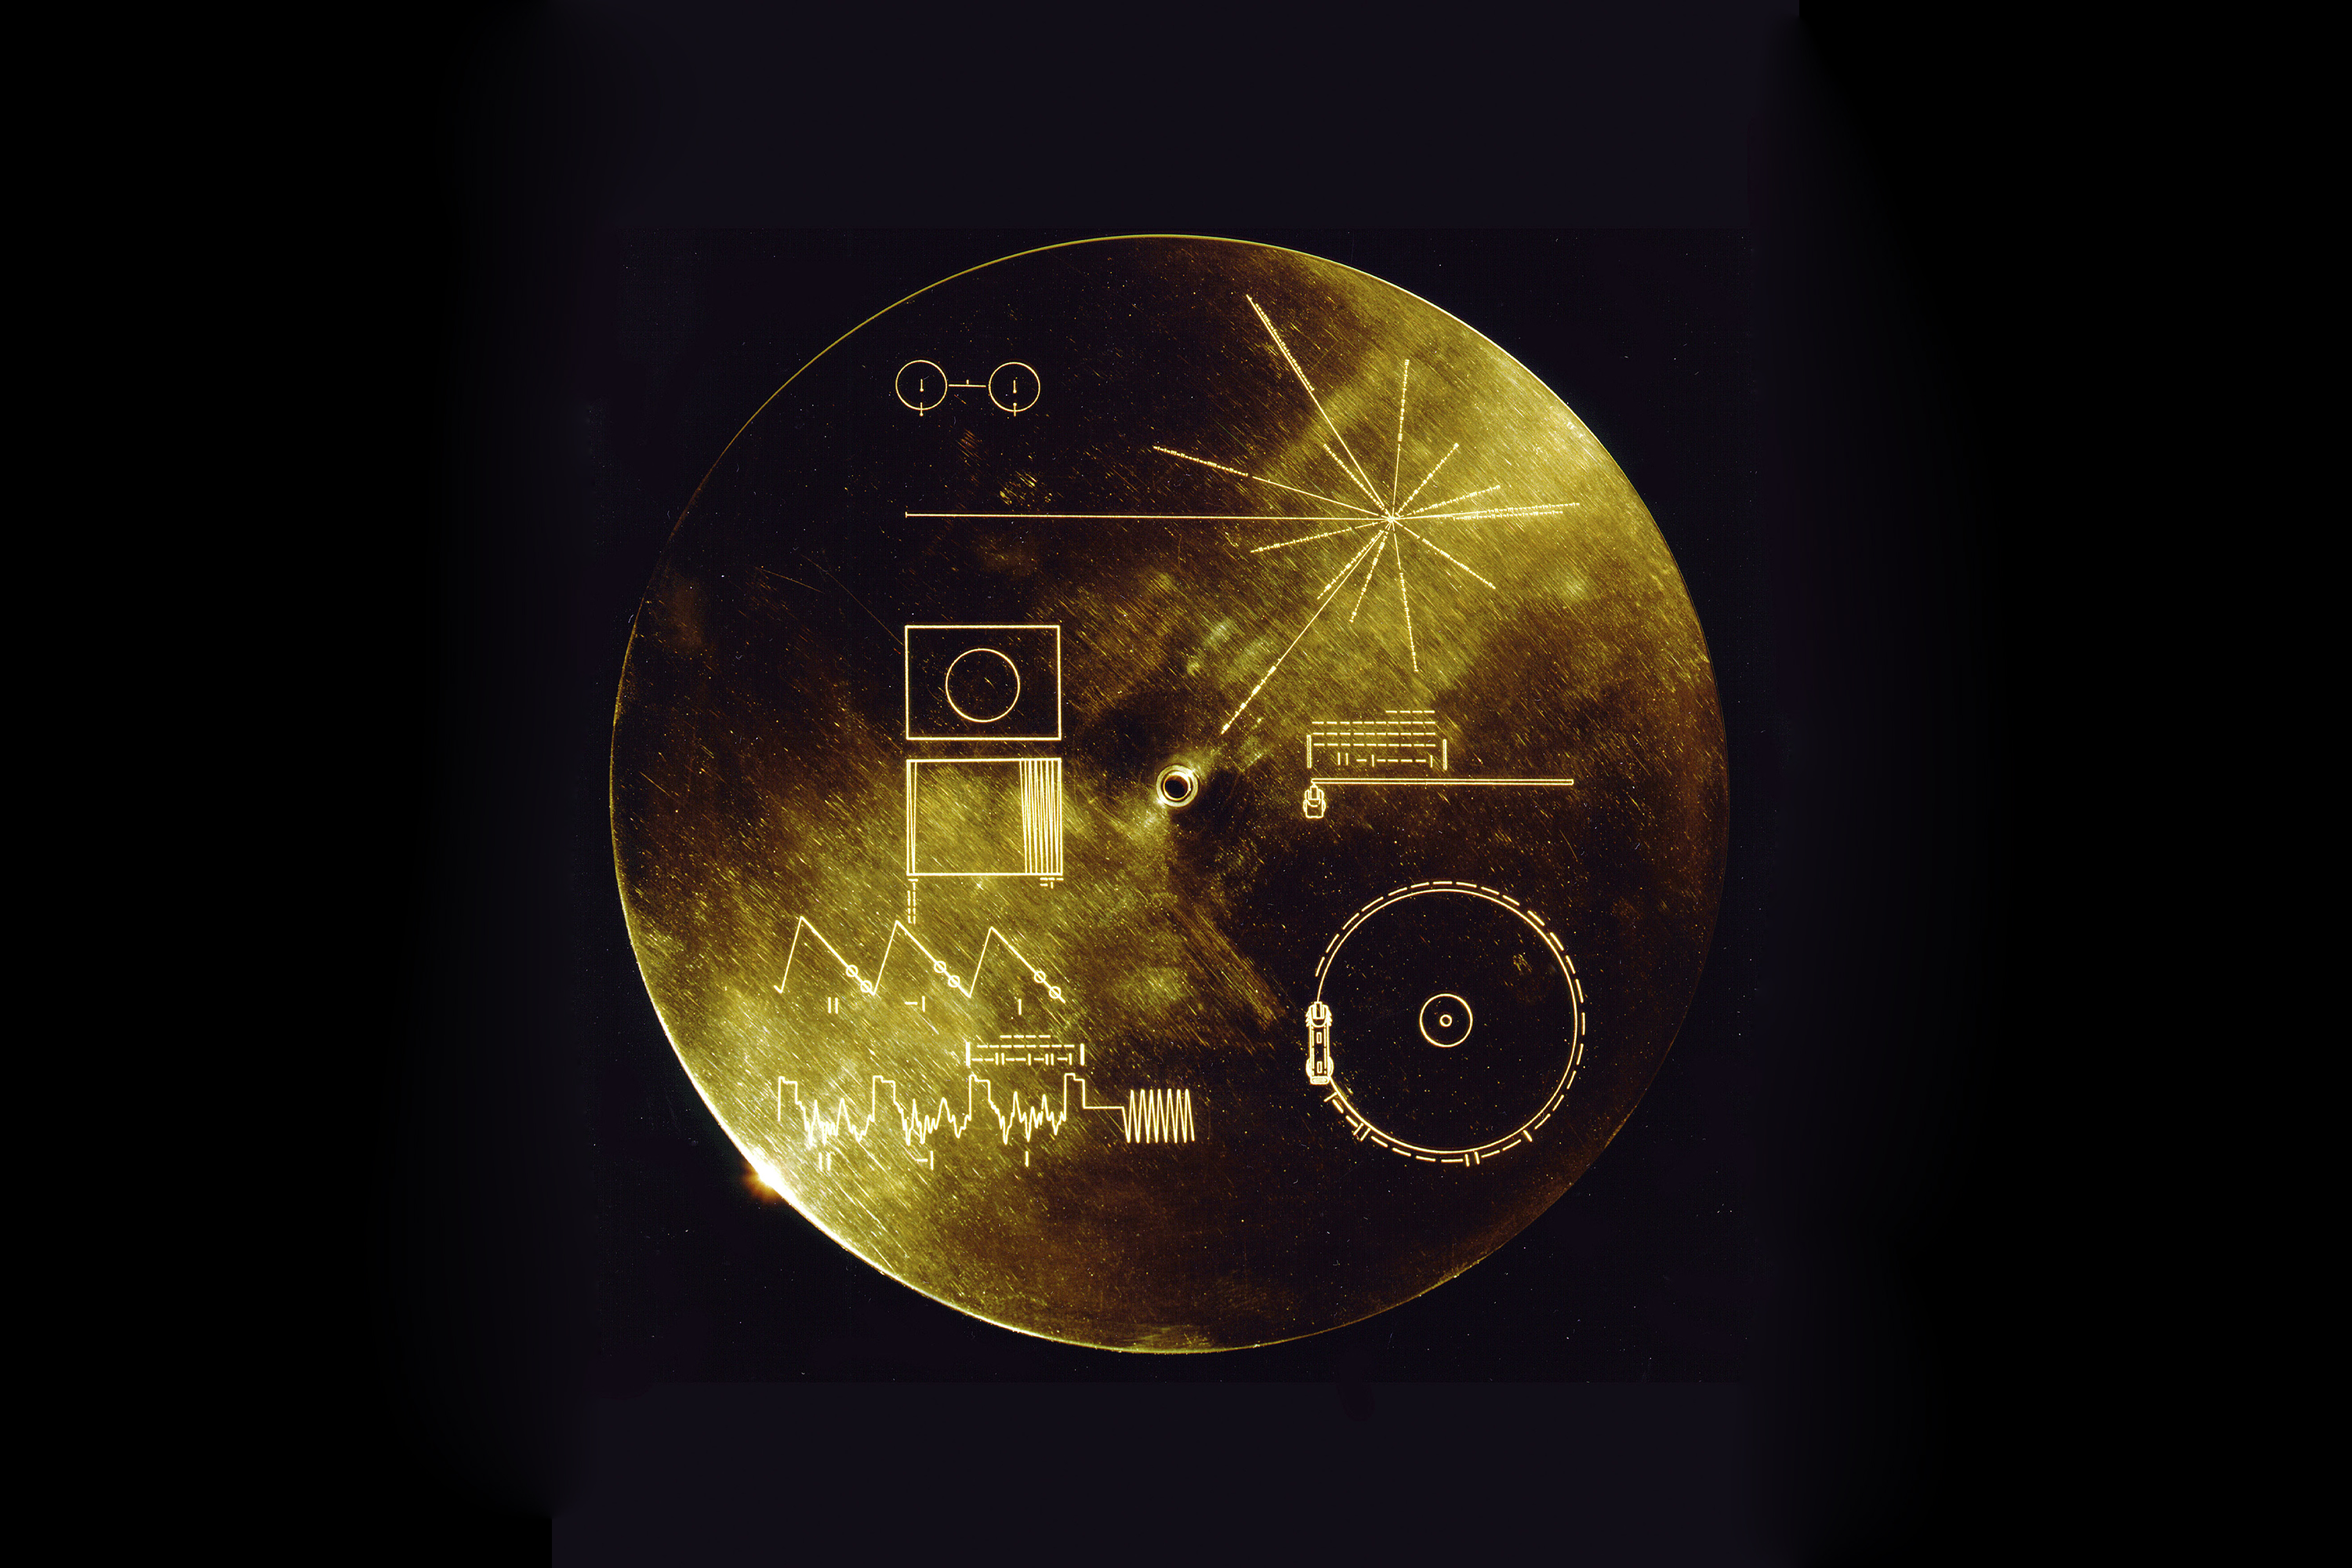 Flying aboard Voyagers 1 and 2 are identical golden records, carrying the story of Earth far into deep space. The 12 inch gold-plated copper discs contain greetings in 60 languages, samples of music from different cultures and eras, and natural and man-made sounds from Earth.